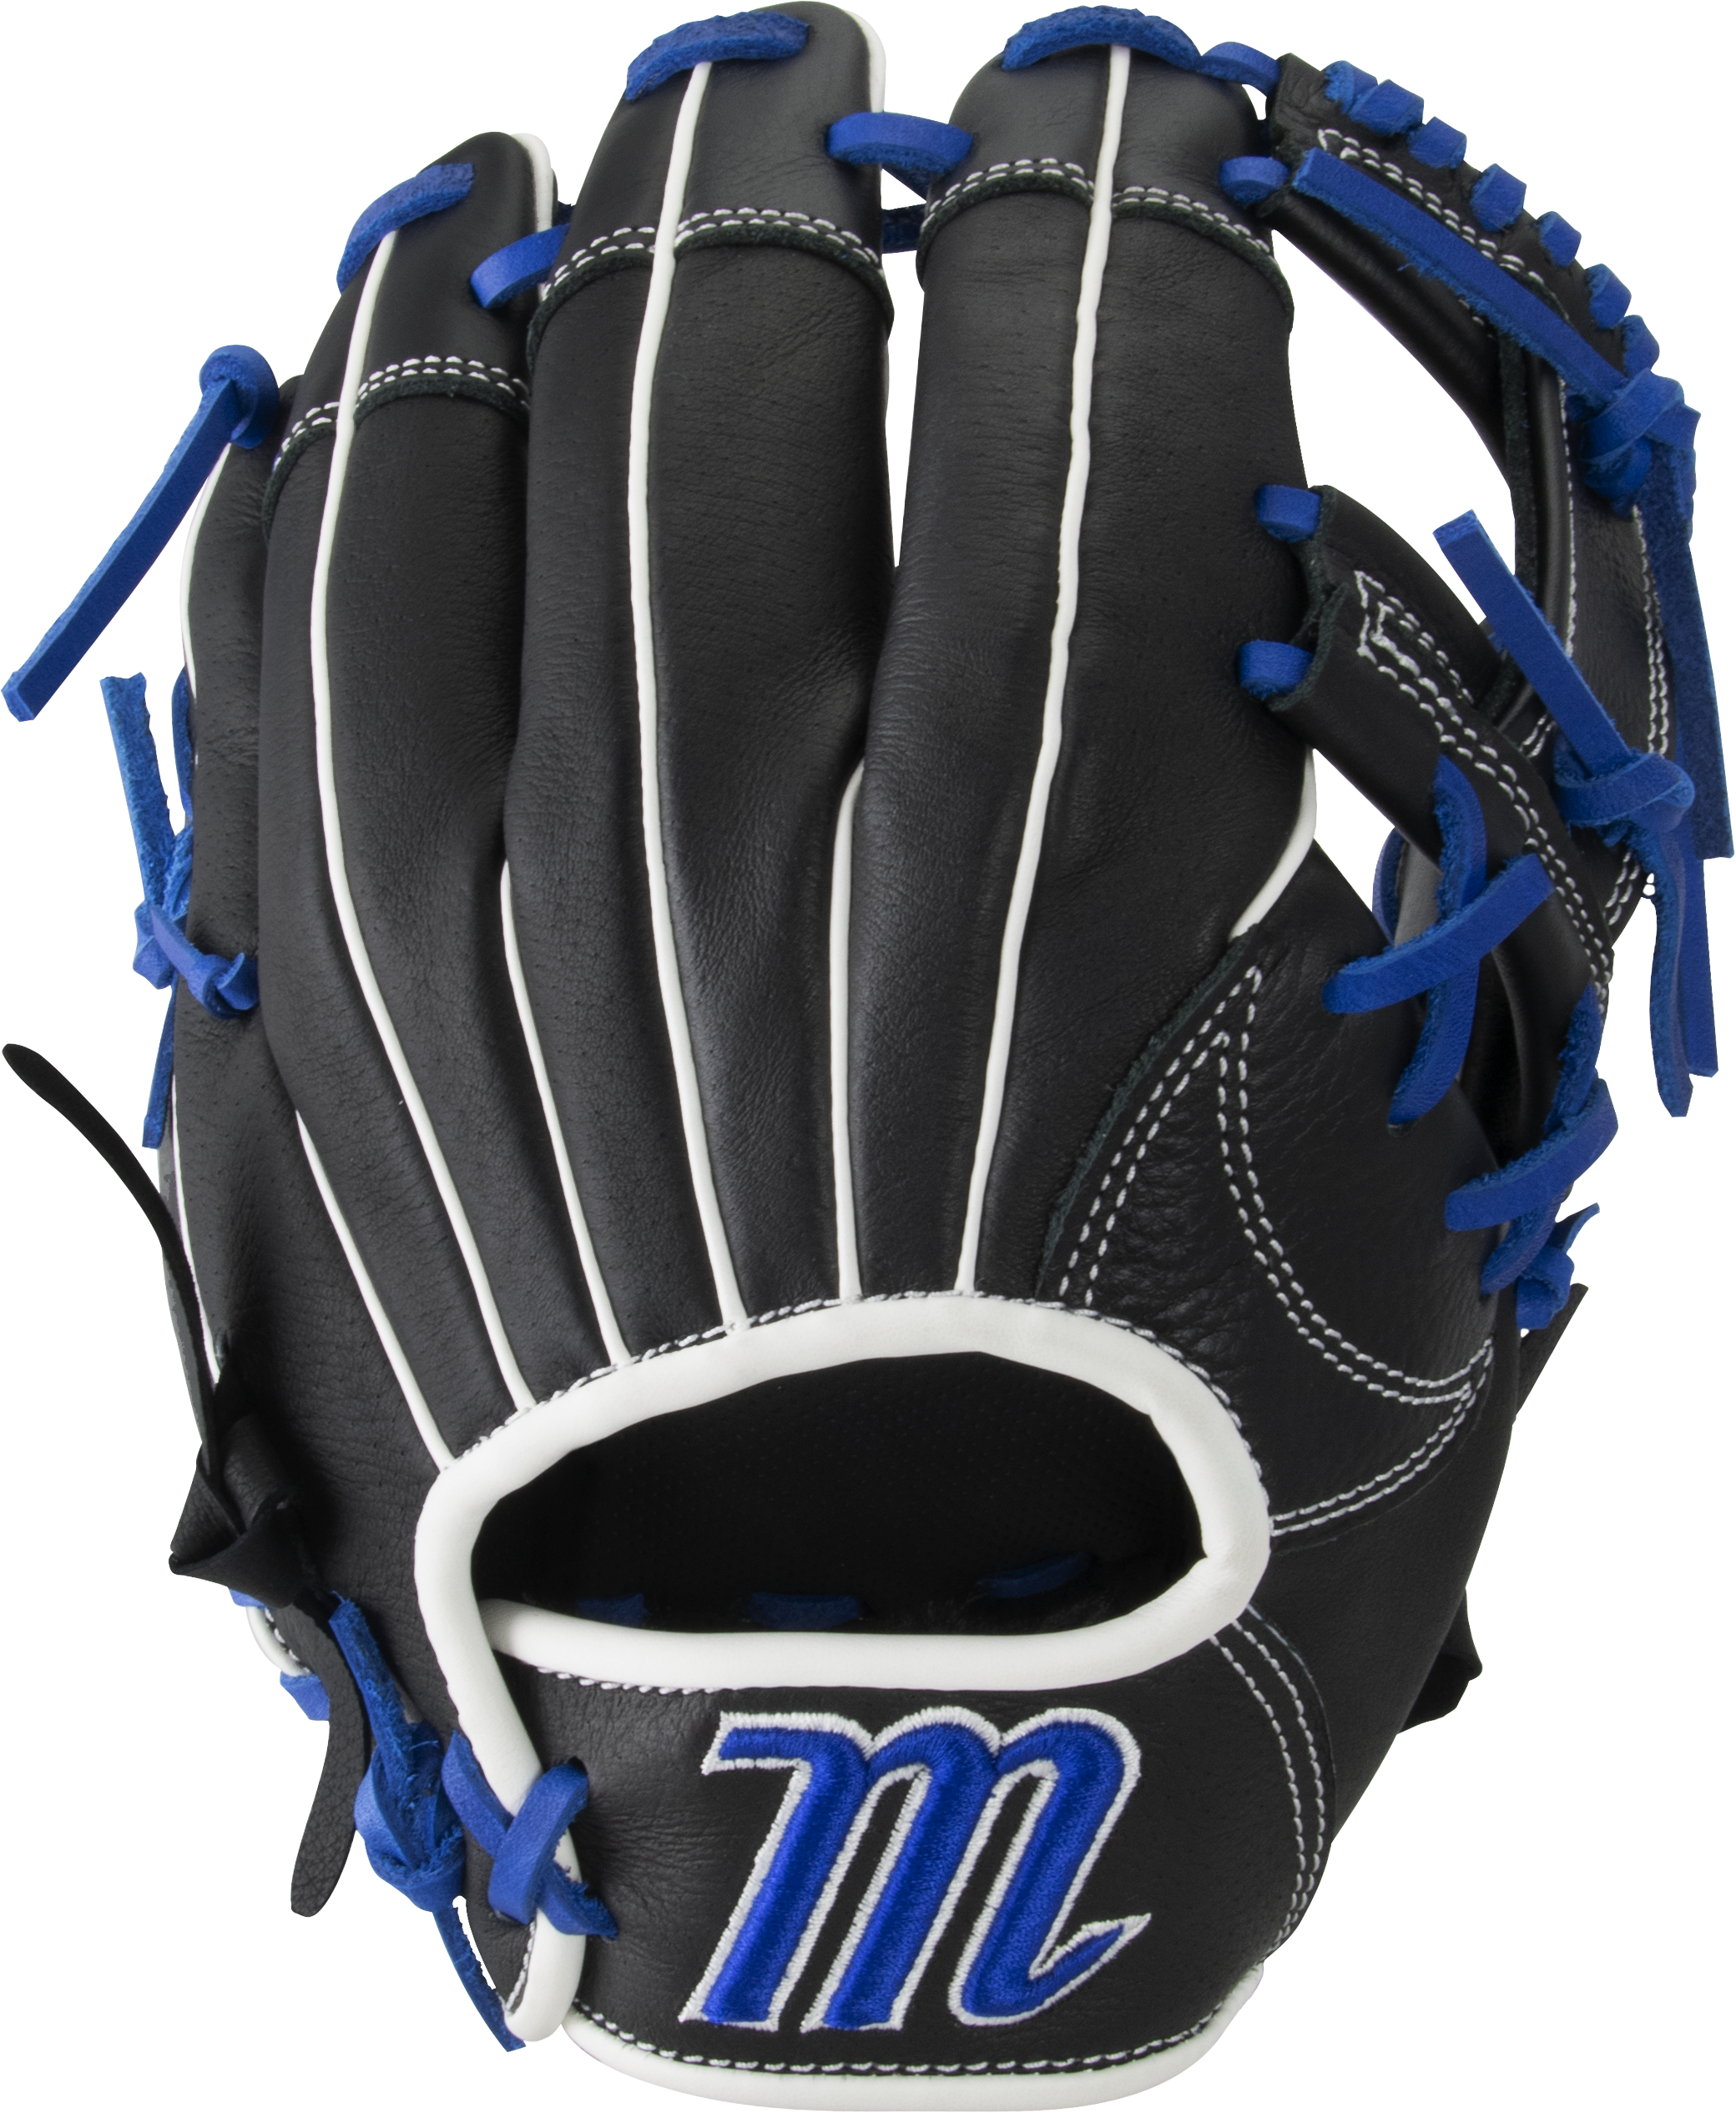 marucci-acadia-youth-baseball-glove-ac1100y-11-i-web-right-hand-throw MFGAC11Y-BKRB-RightHandThrow Marucci 849817099711 Full leather shell provides strength while padded palm lining reduces weight